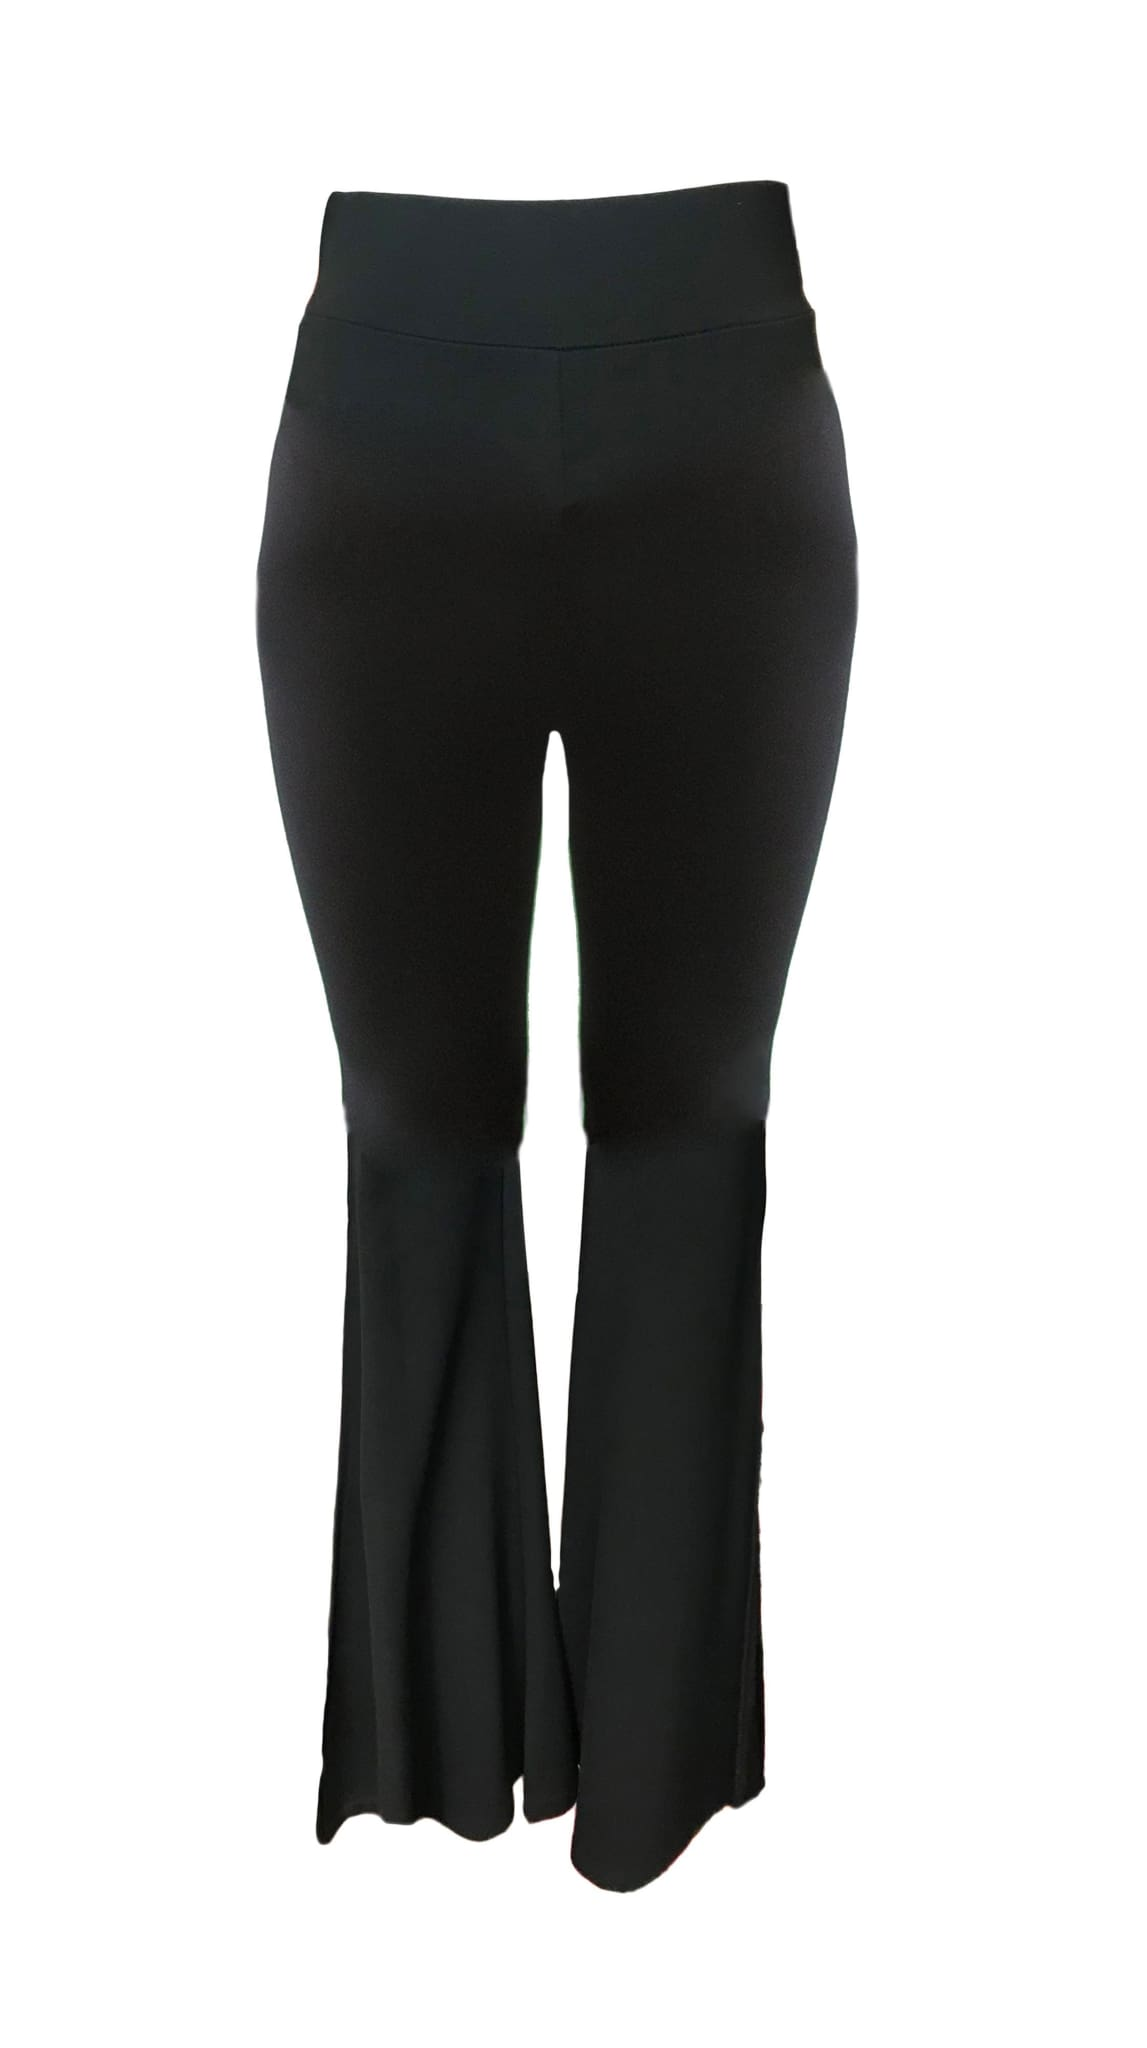 Black Madison Side-Slit Yoga anywhere Pant by Bianca Zidik | Nineteenth Amendment